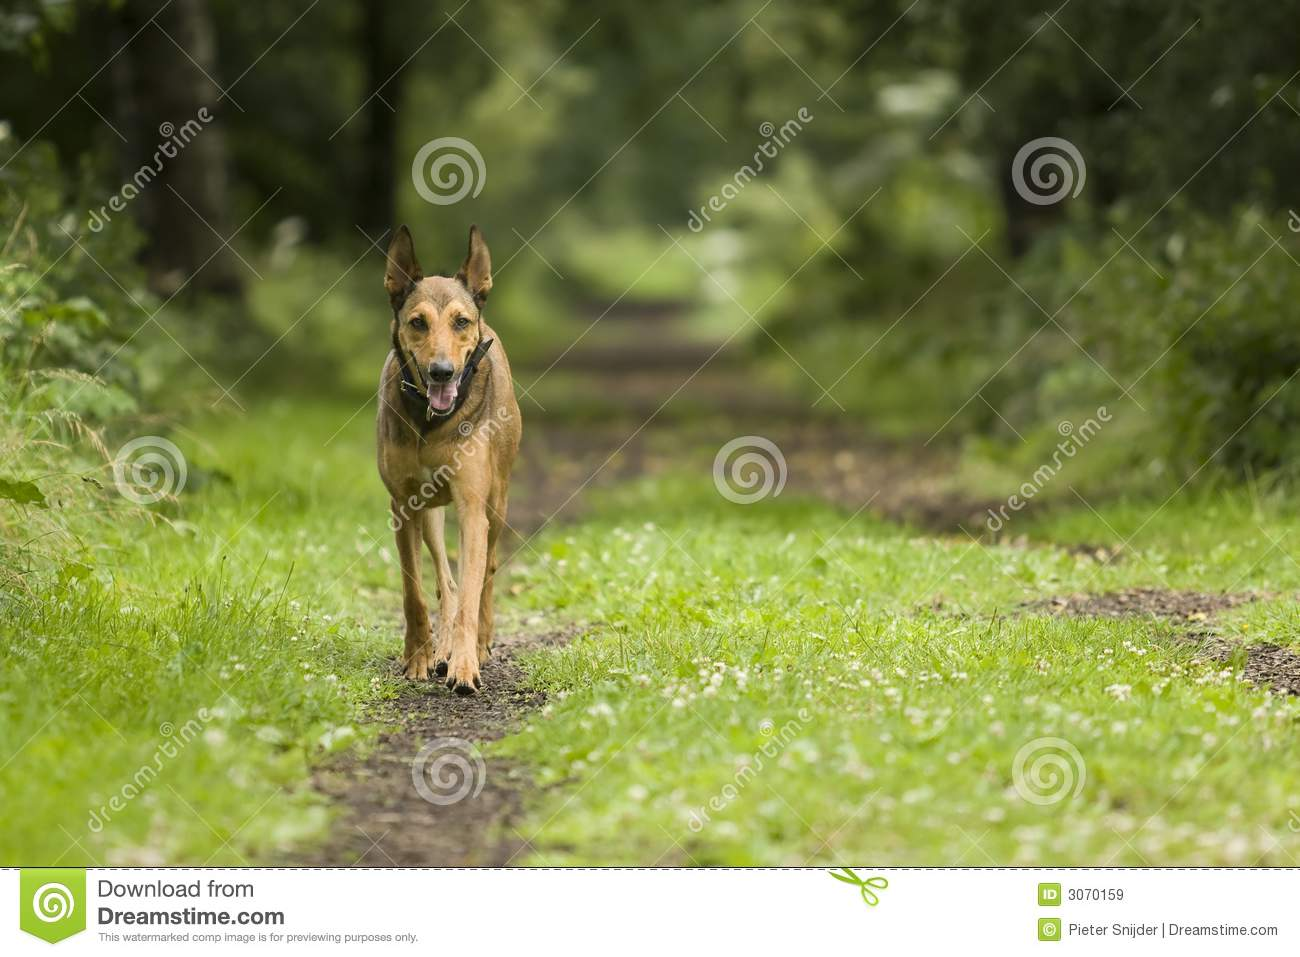 Dog walking in forest